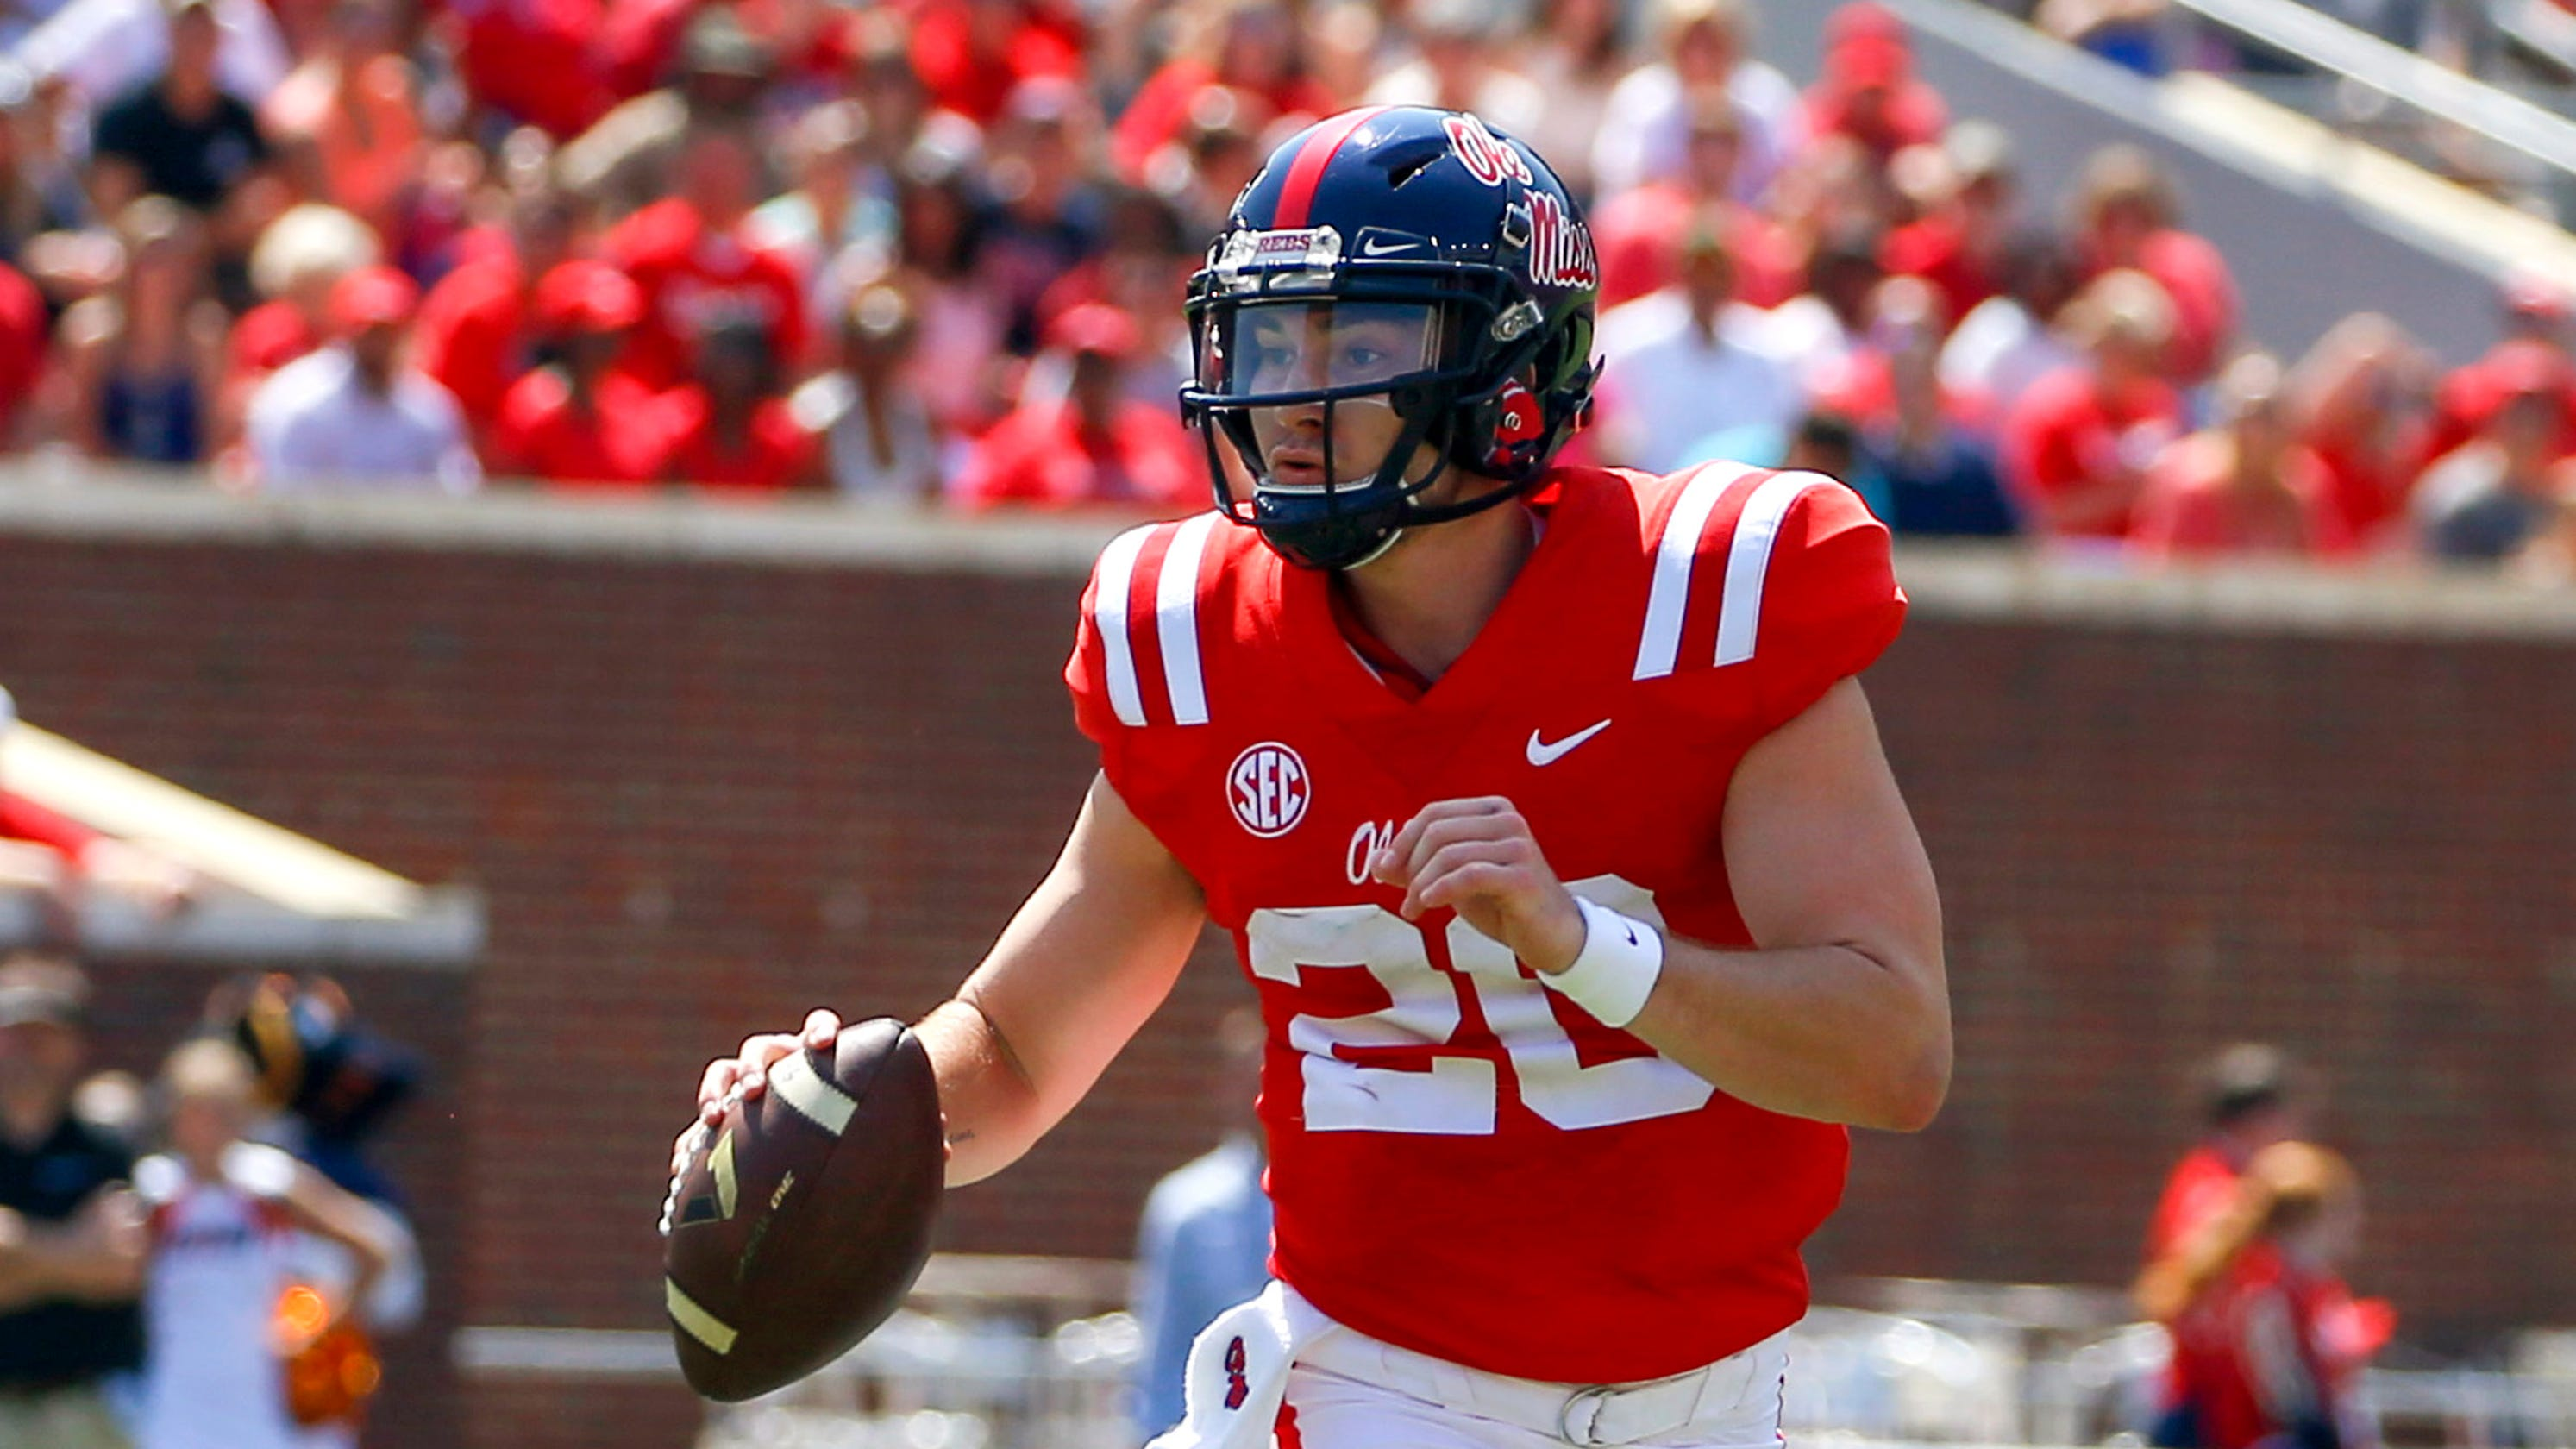 Kirk Herbstreit: With Shea Patterson, Michigan will beat ...